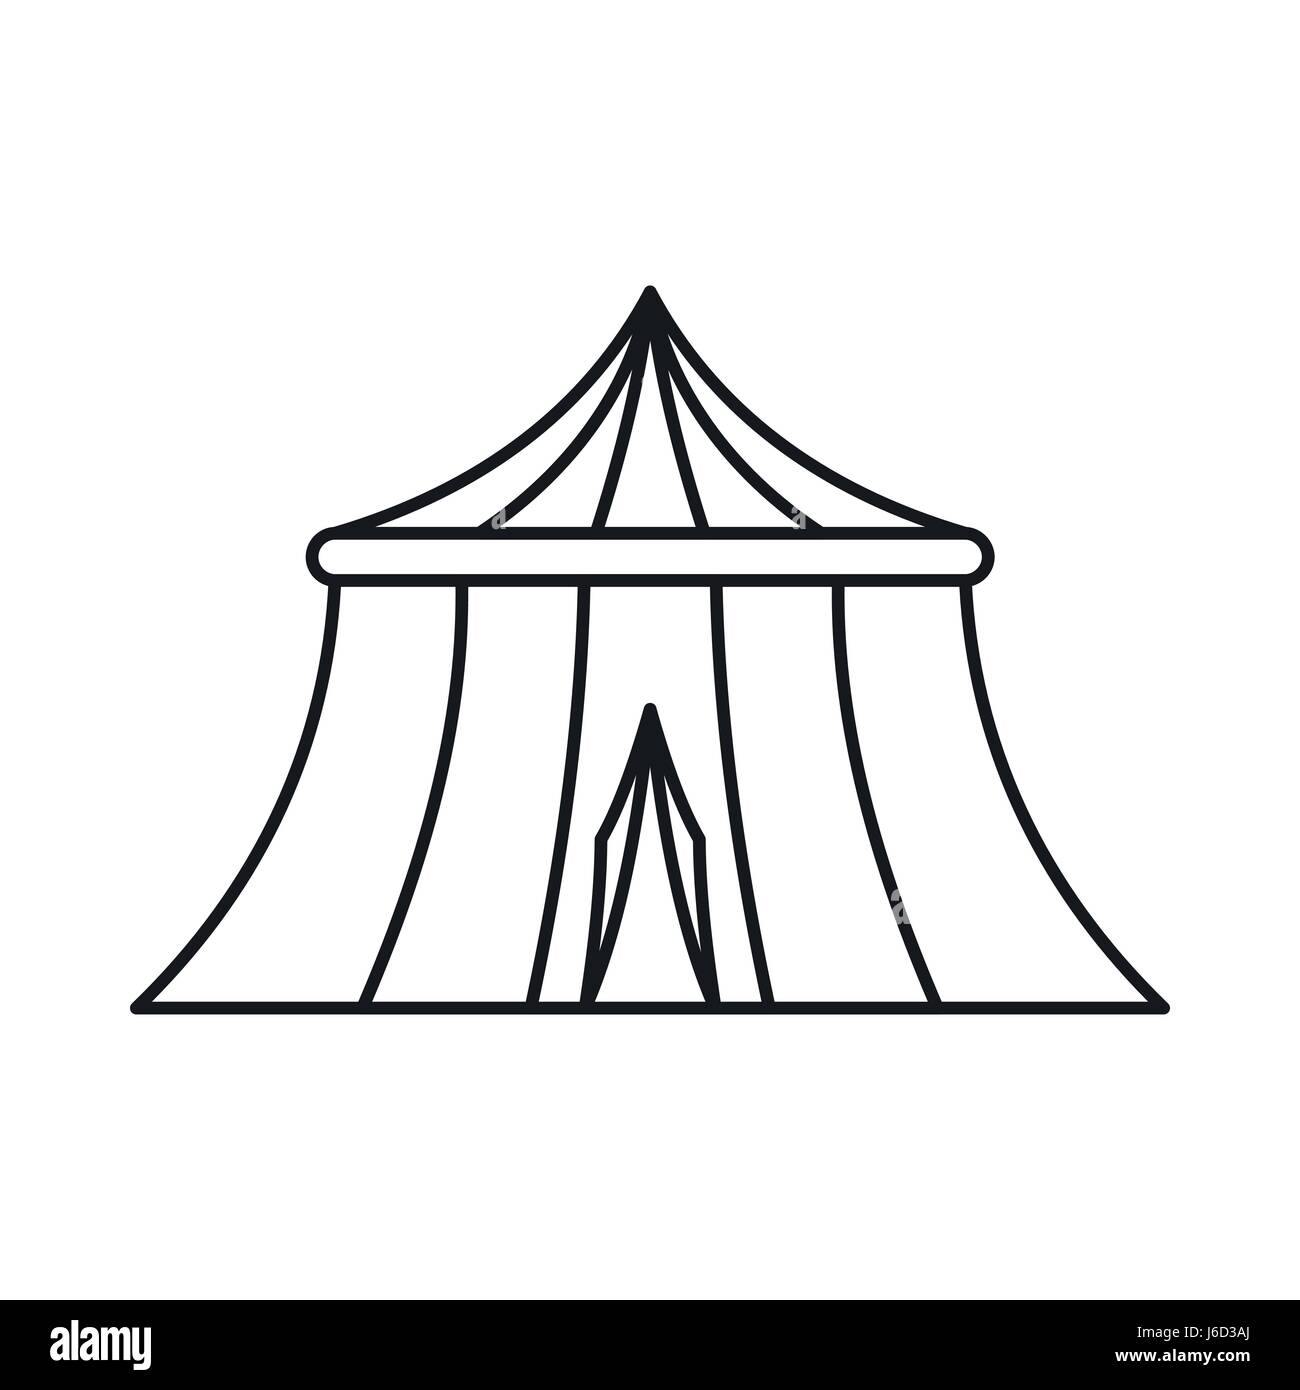 Circus tent icon, outline style - Stock Image